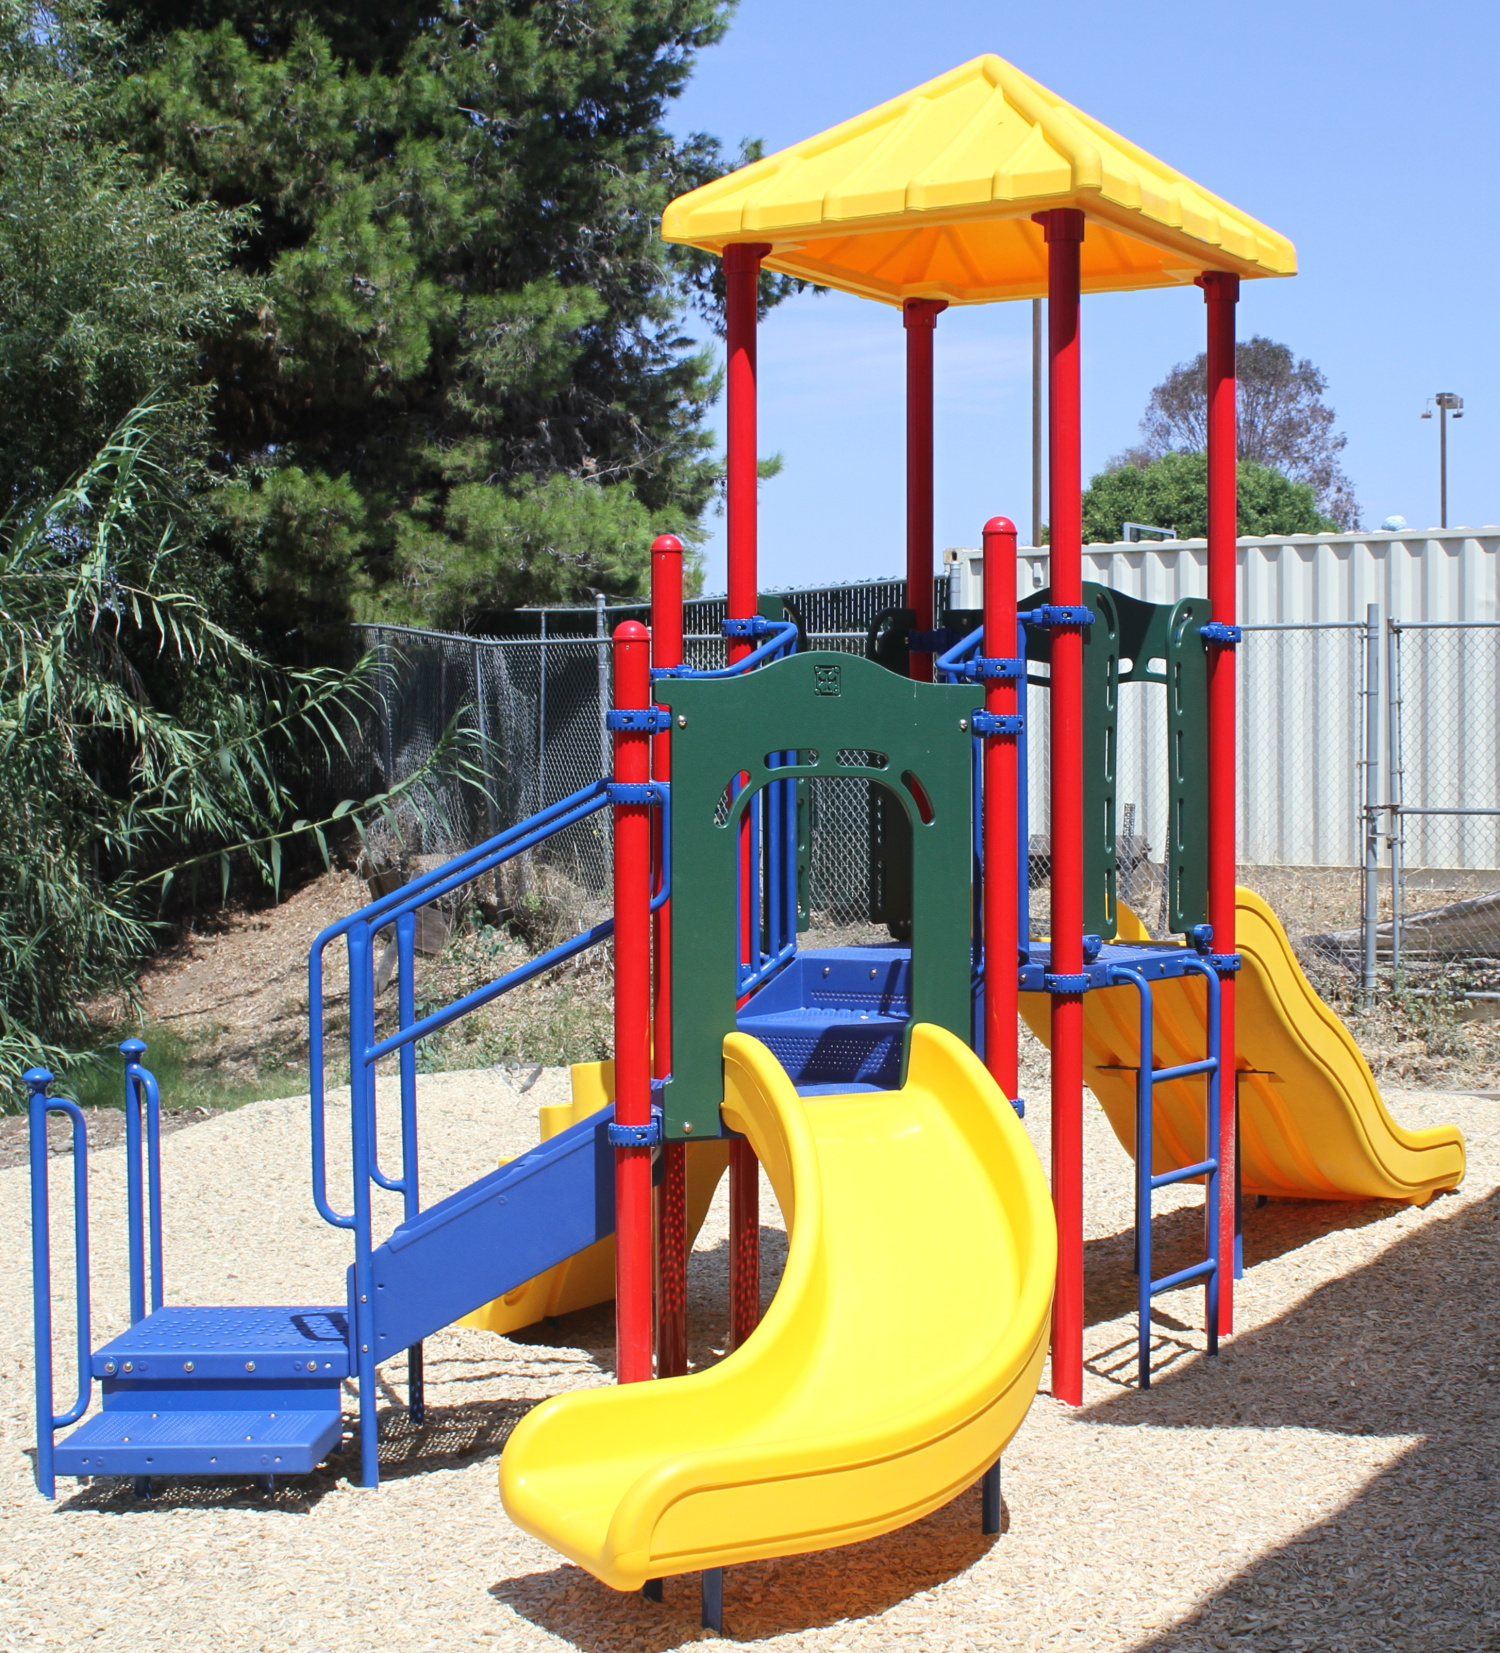 Park Pacific Apartments: Los Angeles Playground Equipment Company Completes San